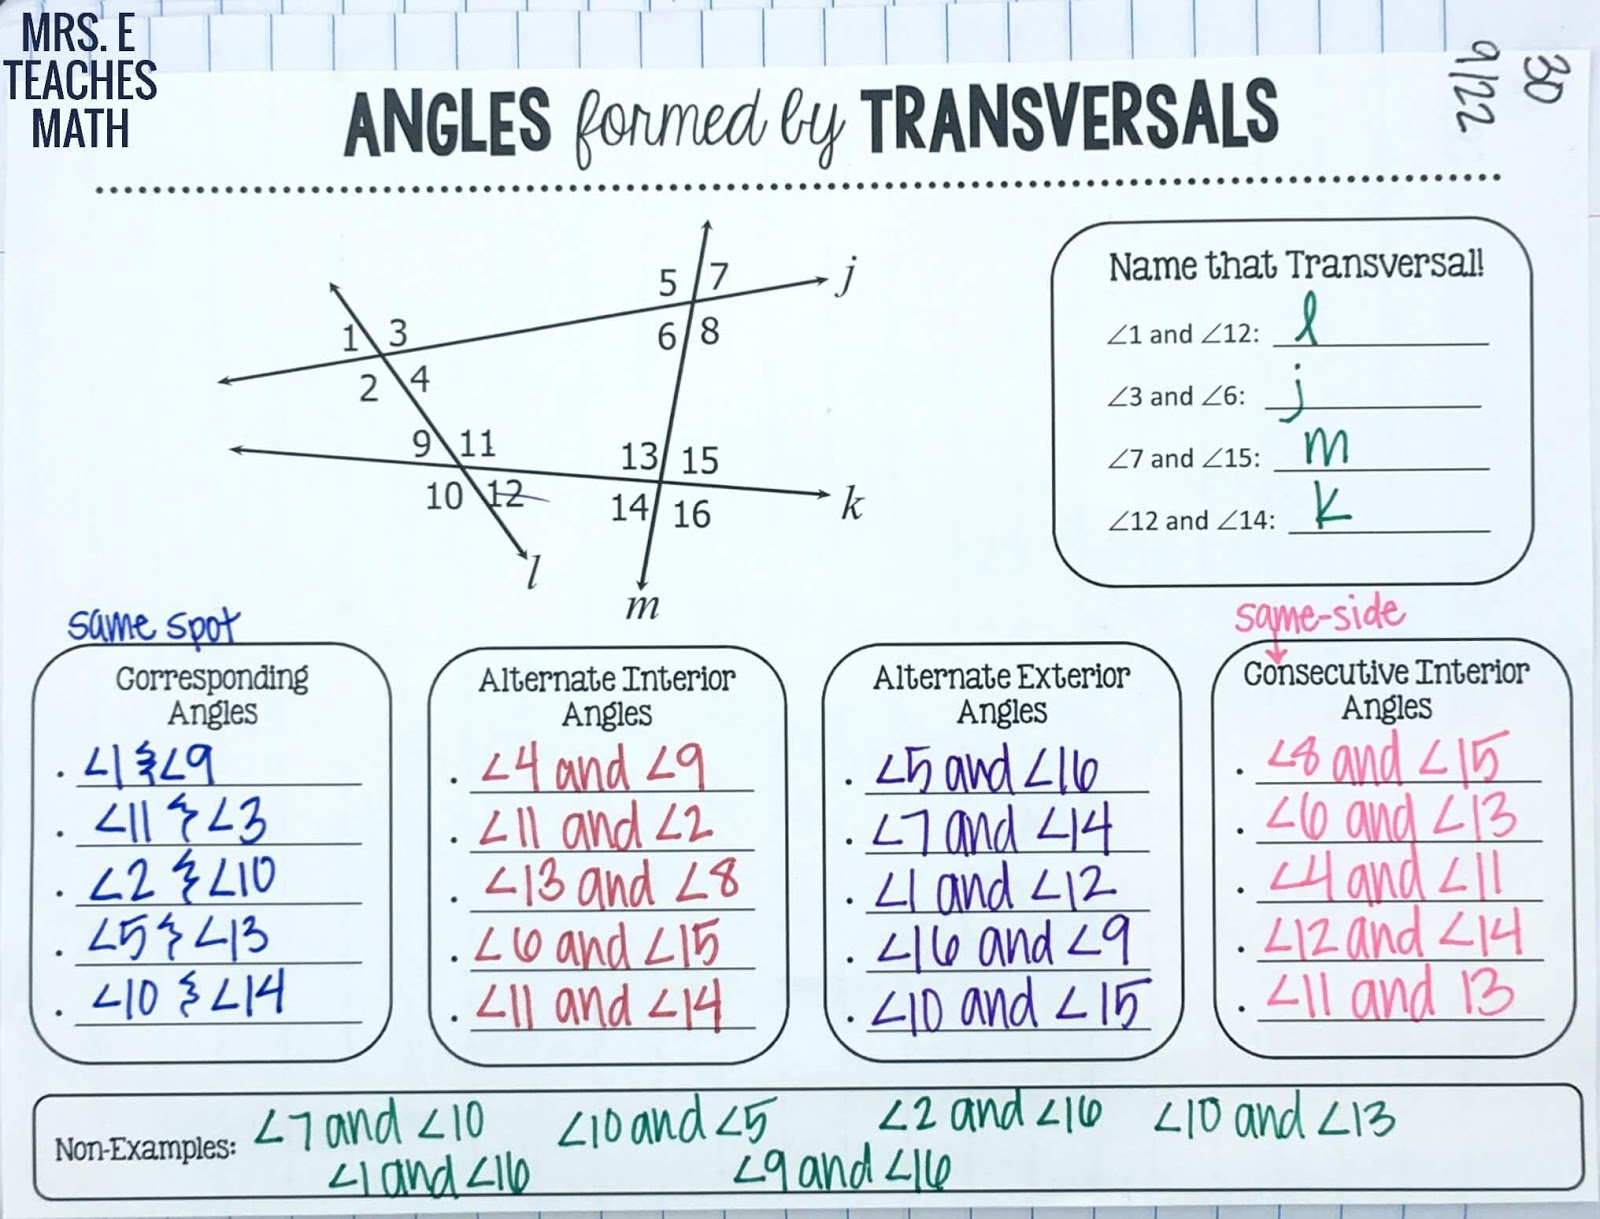 worksheet Parallel Lines And Transversals Worksheets parallel lines inb pages mrs e teaches math angles formed by and transversals graphic organizer for interactive notebooks in geometry